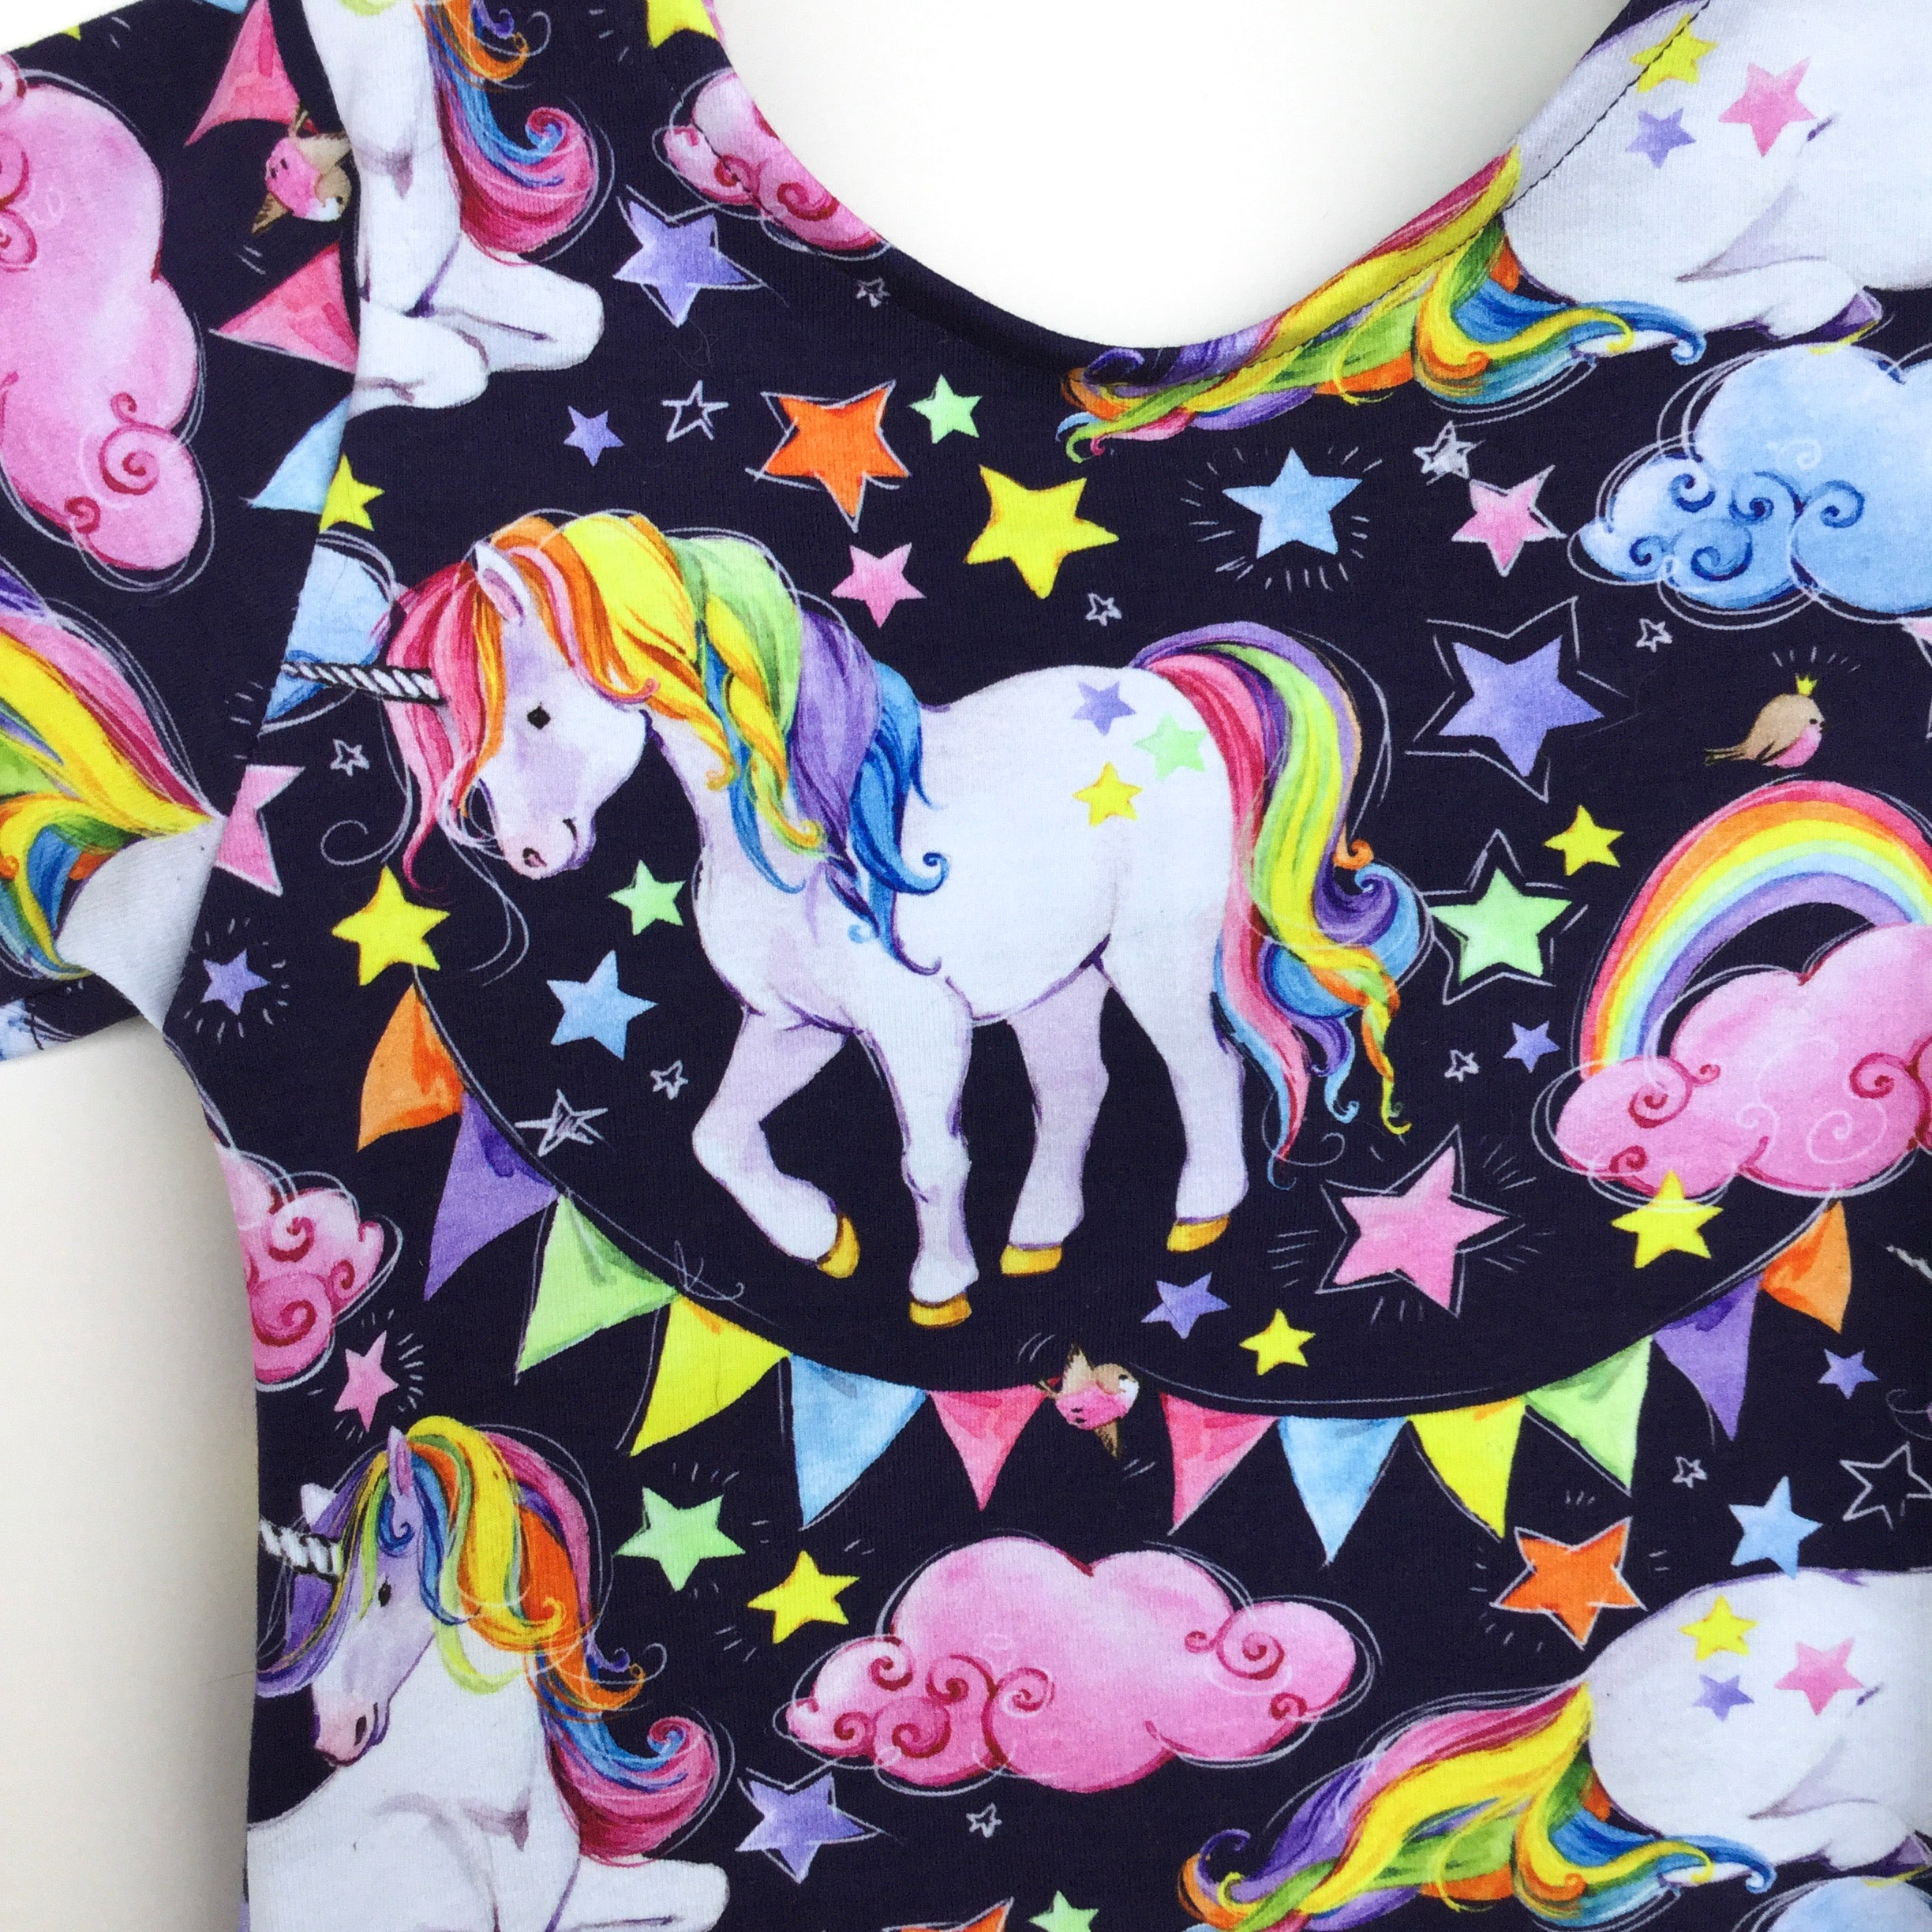 dancing rainbow unicorn happy style for toddlers leotard